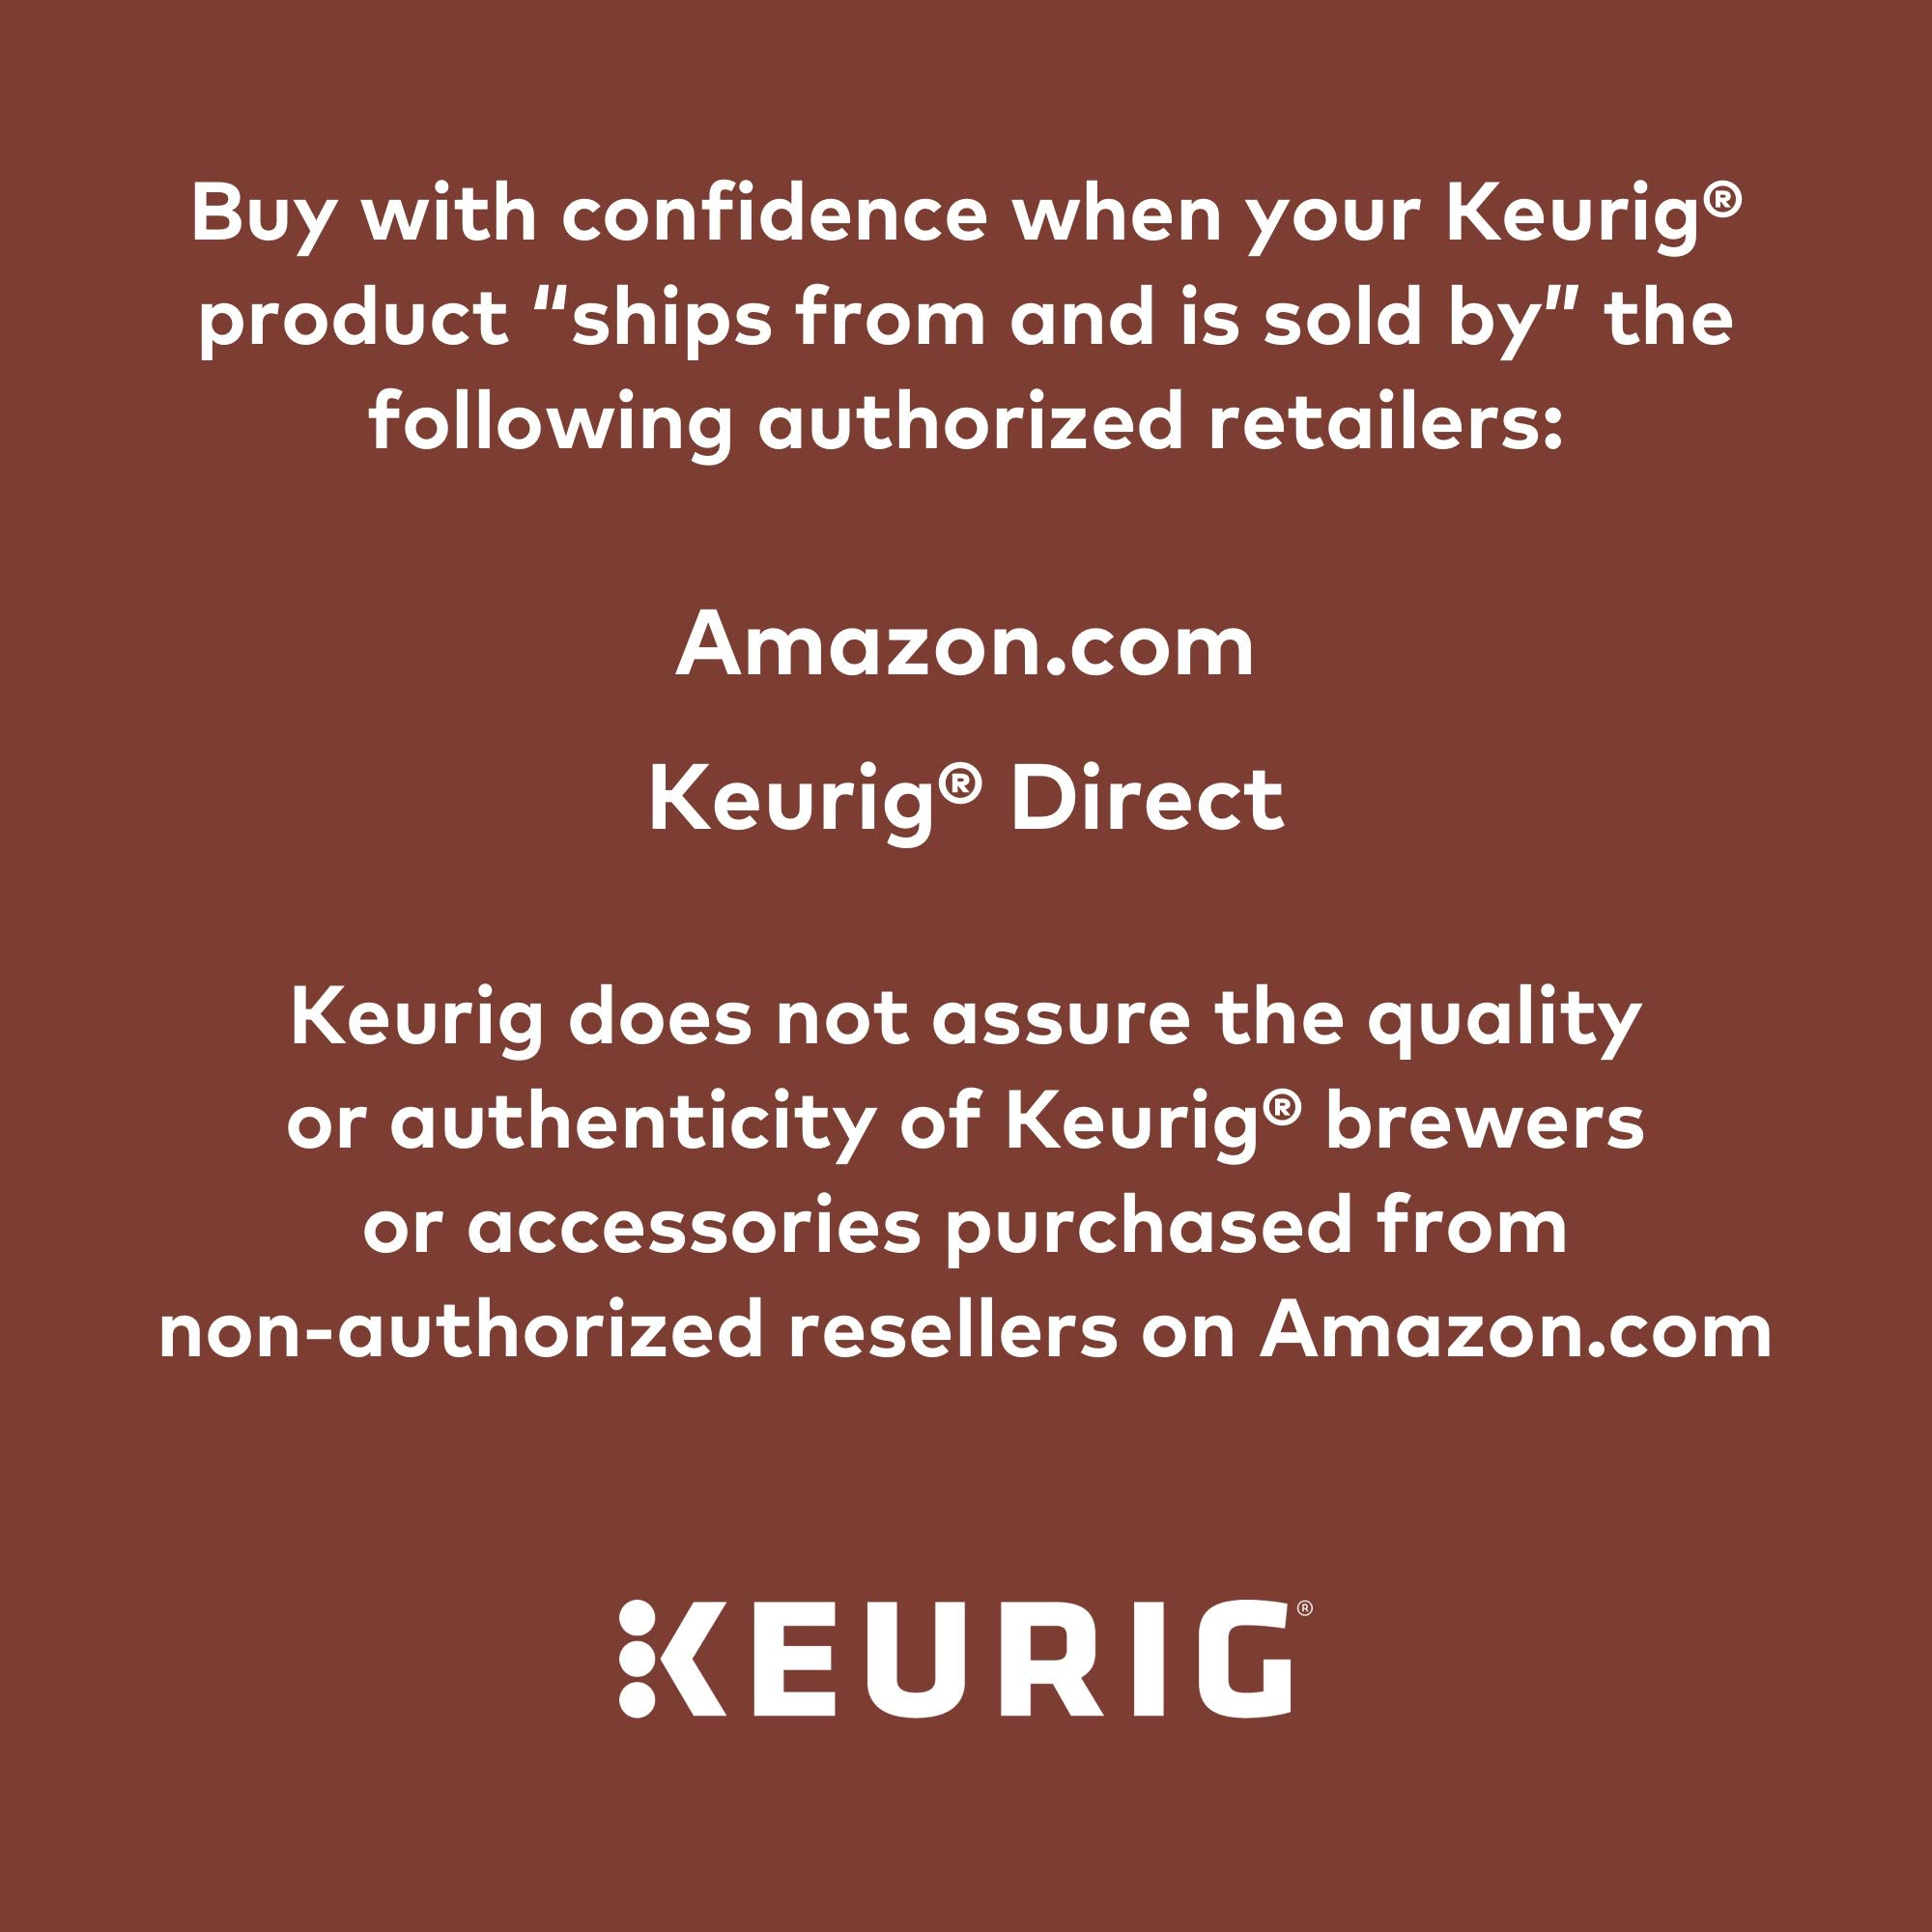 Keurig Brewer Care Kit with Descaling Solution and 2 Water Filter Cartridges, Compatible With All Keurig 2.0 and 1.0 K-Cup Pod Coffee Makers by Keurig (Image #4)